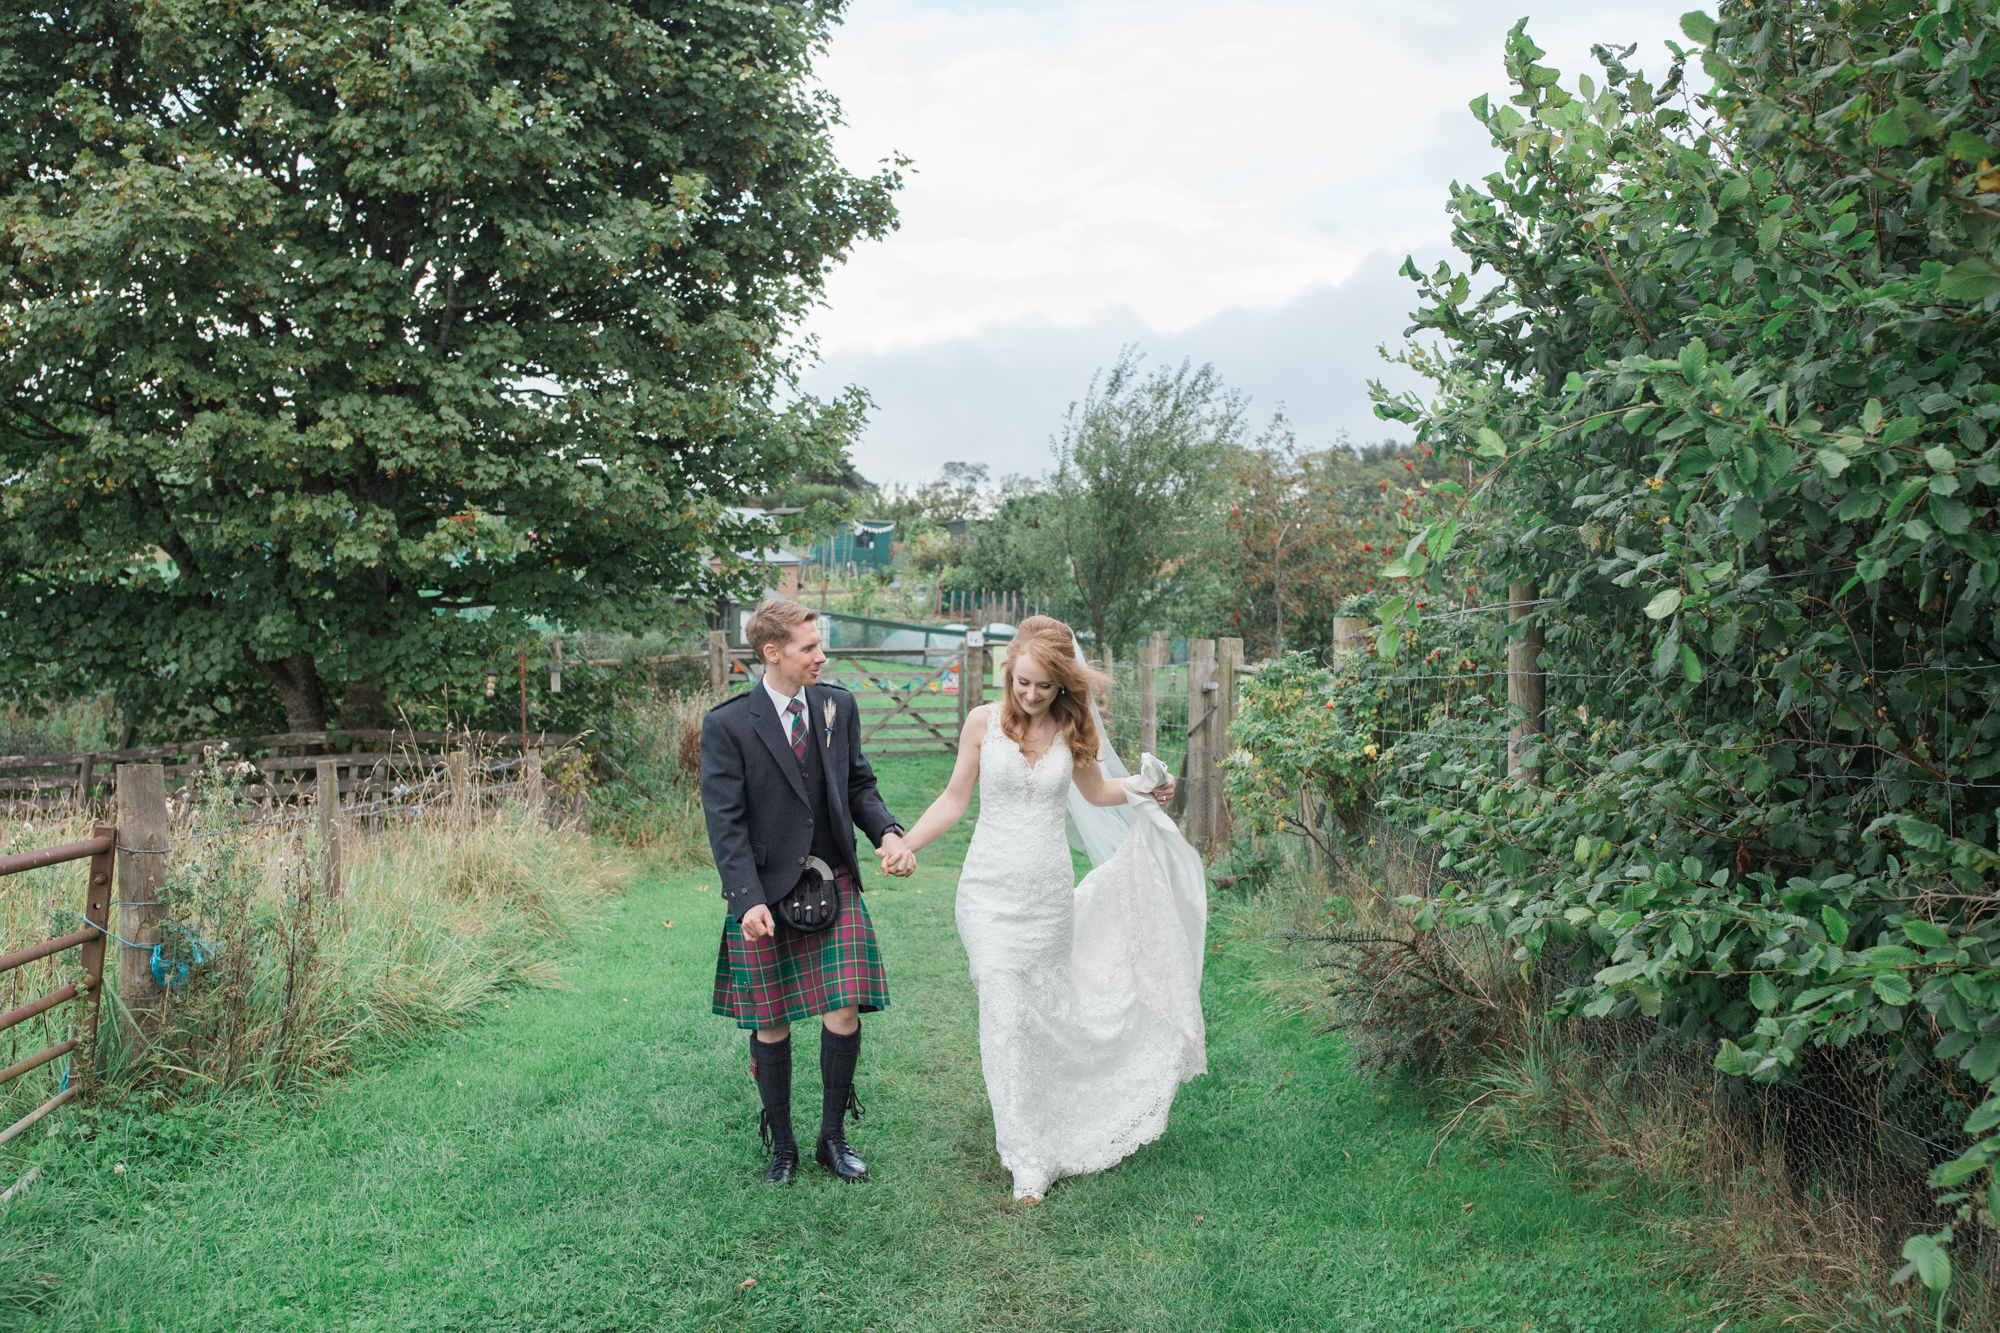 Aberdeenshire wedding photography, Aberdeen wedding photography